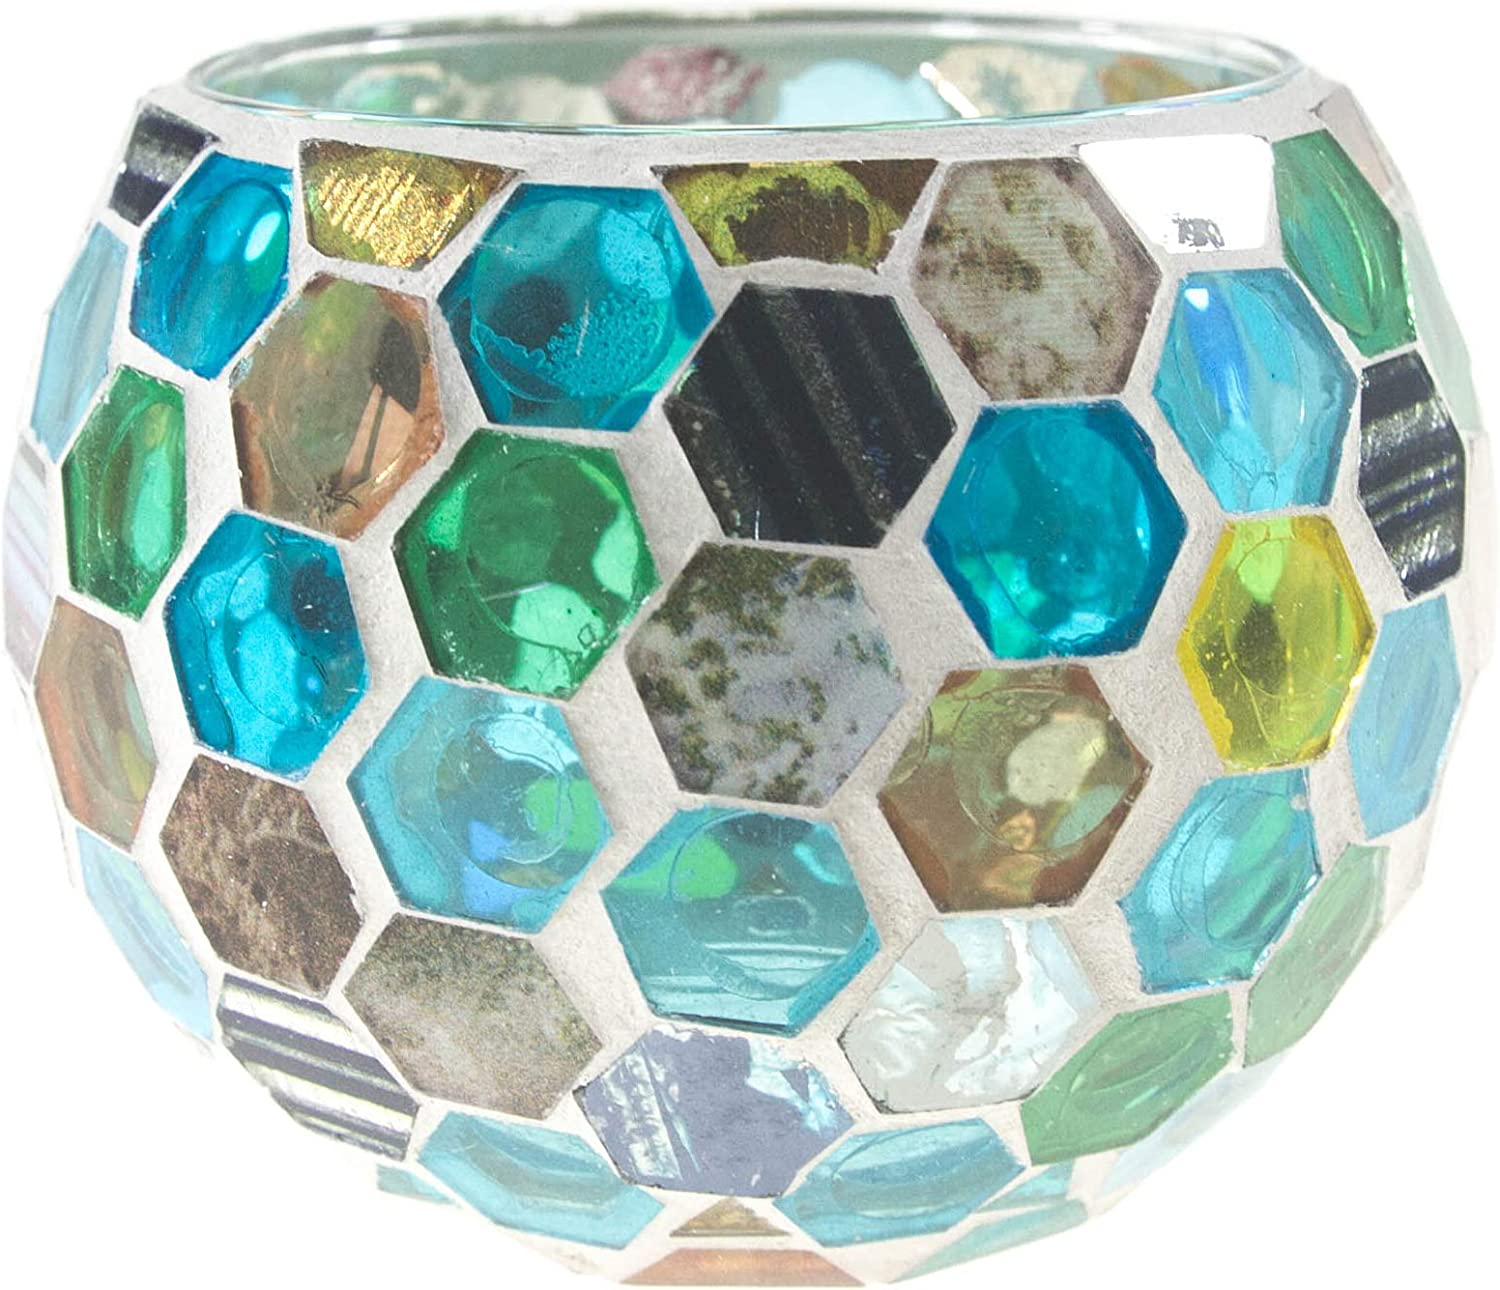 Frespersy Candle Holders Mosaic Glass Jars Votive Tealight Candleholders for Holidays, Weddings, Parties Home Decor Thanksgiving Gifts (Flashing Ball)